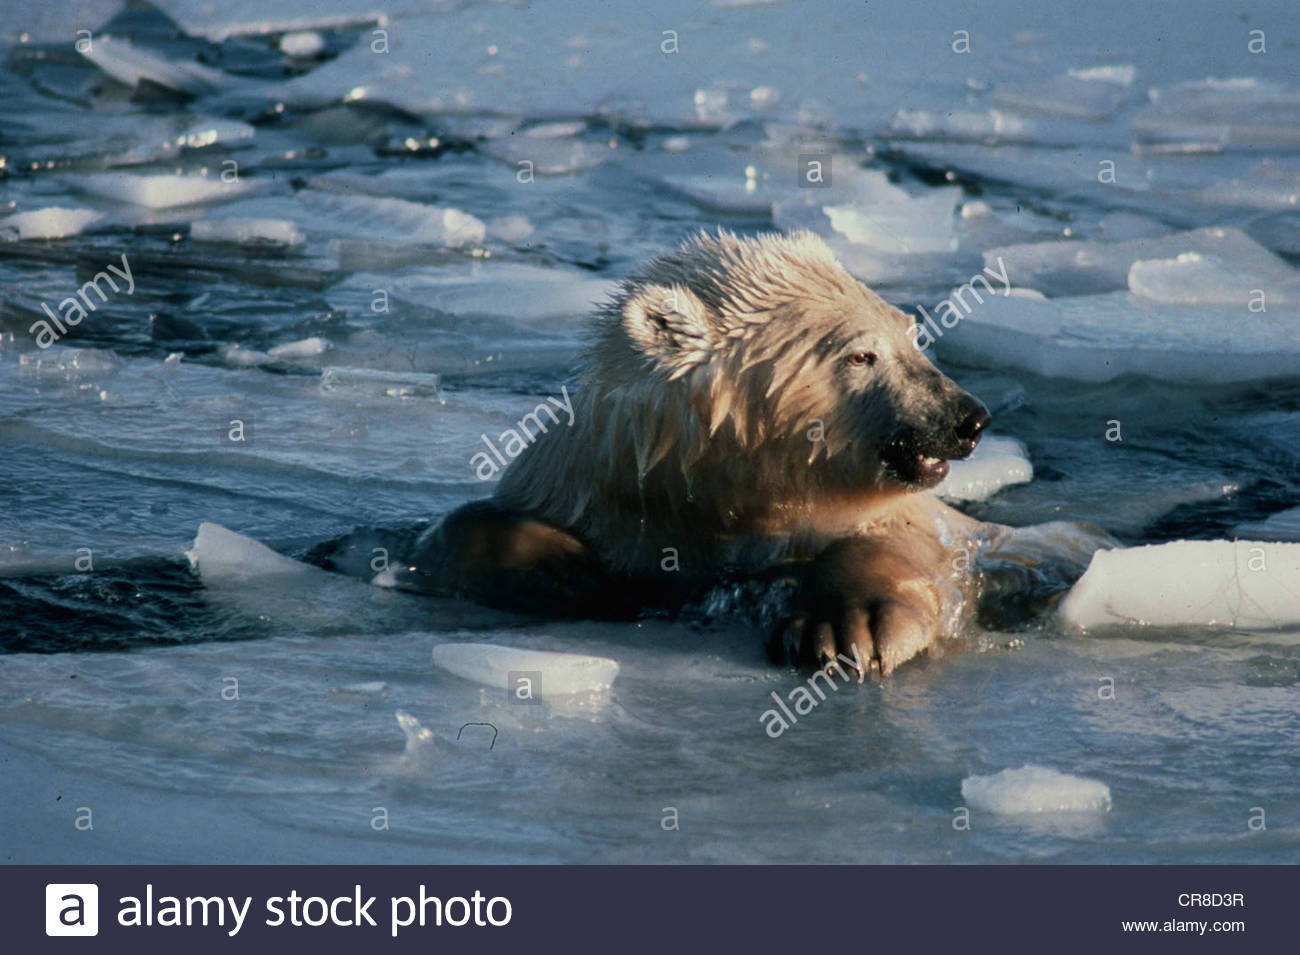 Polar bear emerges from a swim in icy waters. - Stock Image